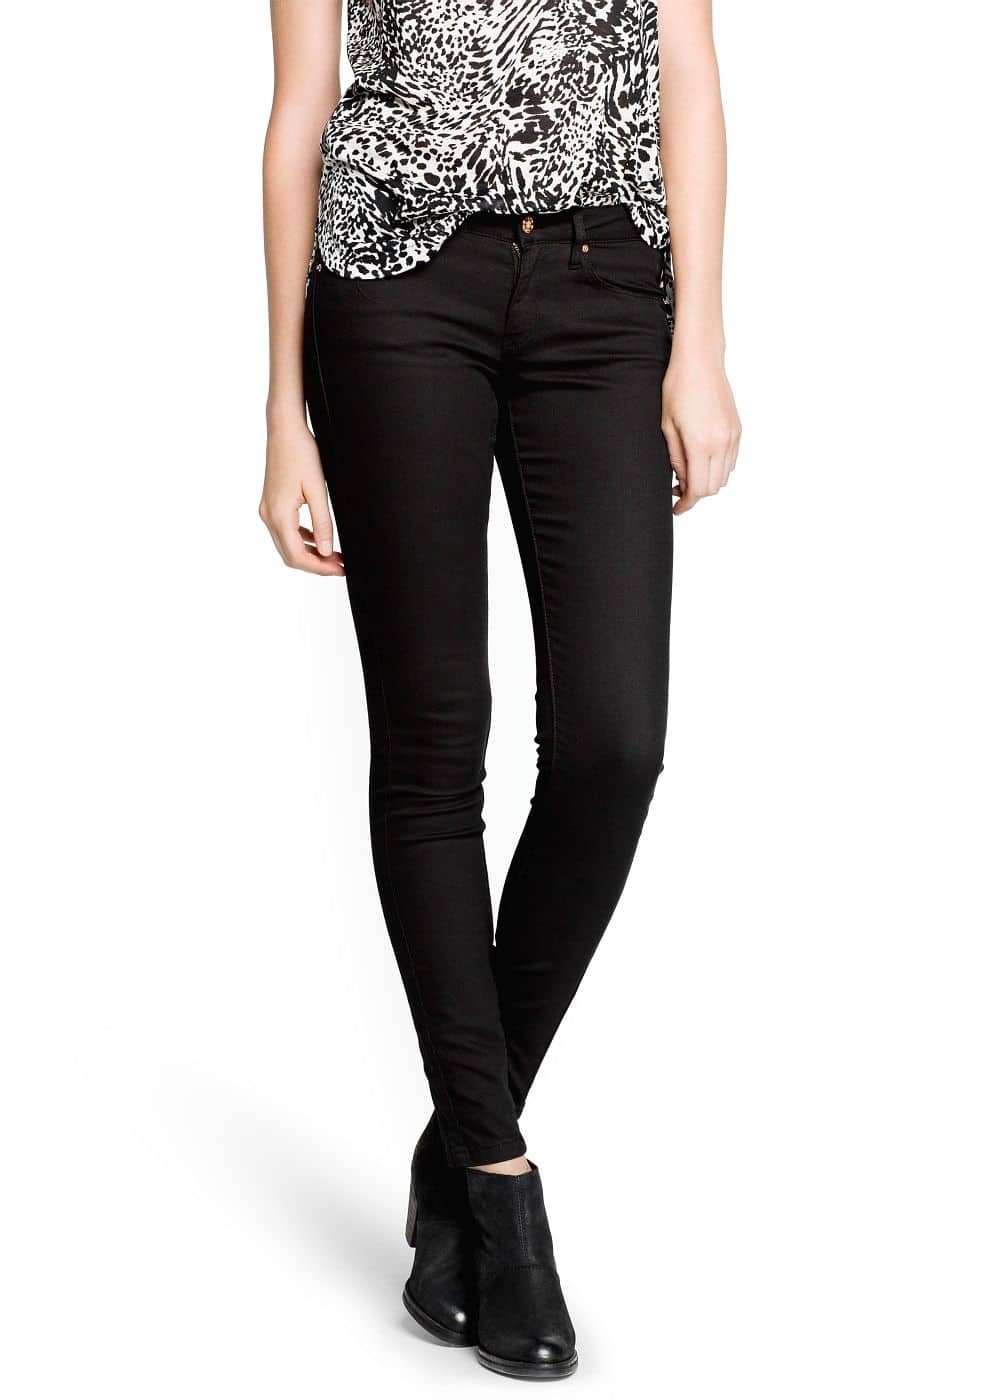 Free shipping and returns on Women's Black Jeans & Denim at dolcehouse.ml